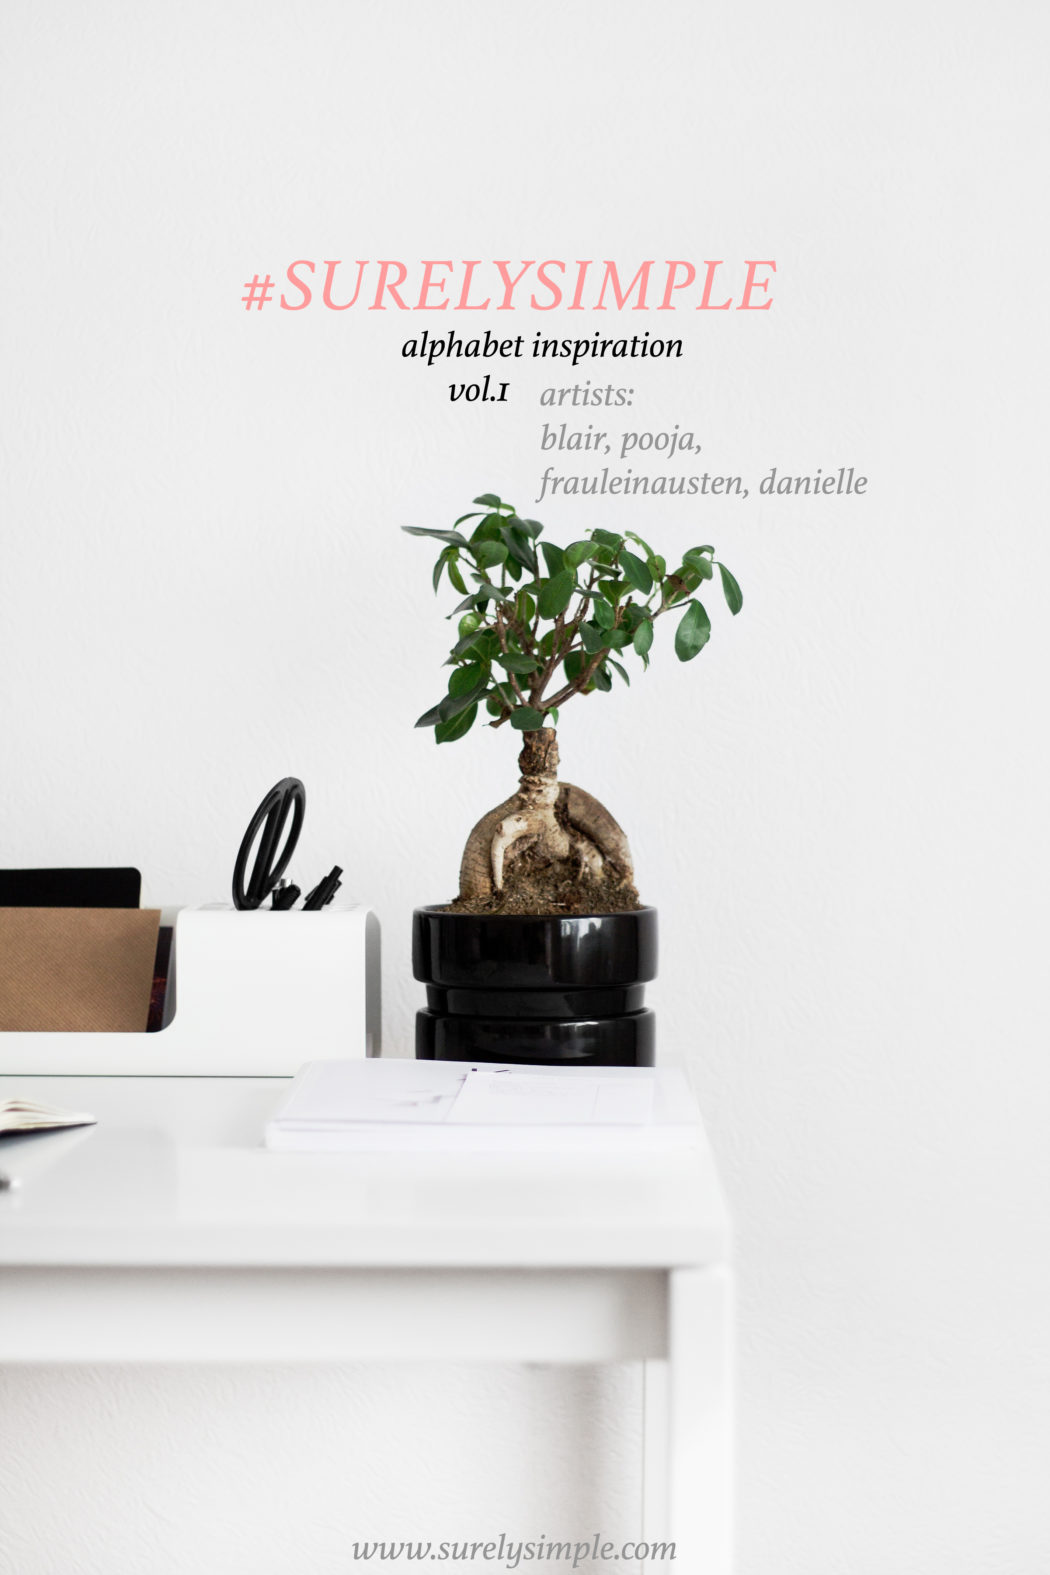 #SurelySimple Alphabet Challenge Artists vol.1 via SurelySimple.com - An interview series